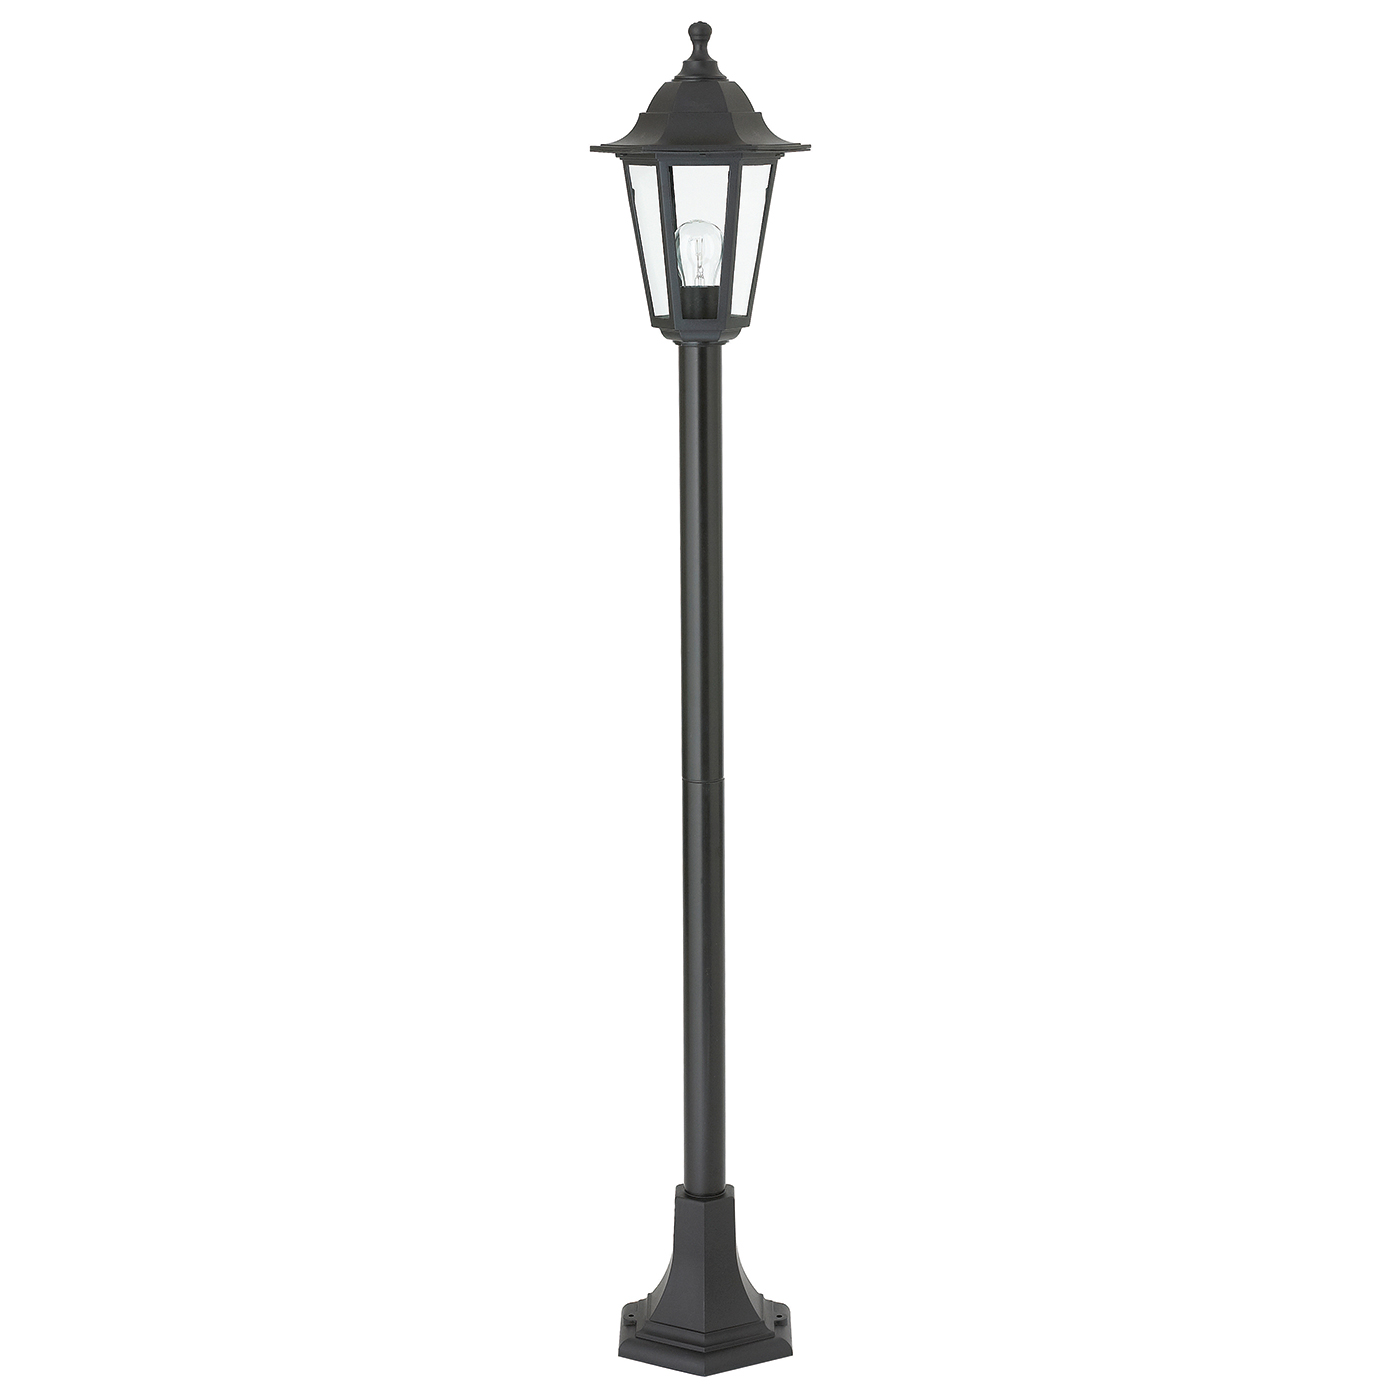 Endon Bayswater Outdoor Lamp Post Ip44 60w Black Polypropylene Amp Clear Glass Liminaires